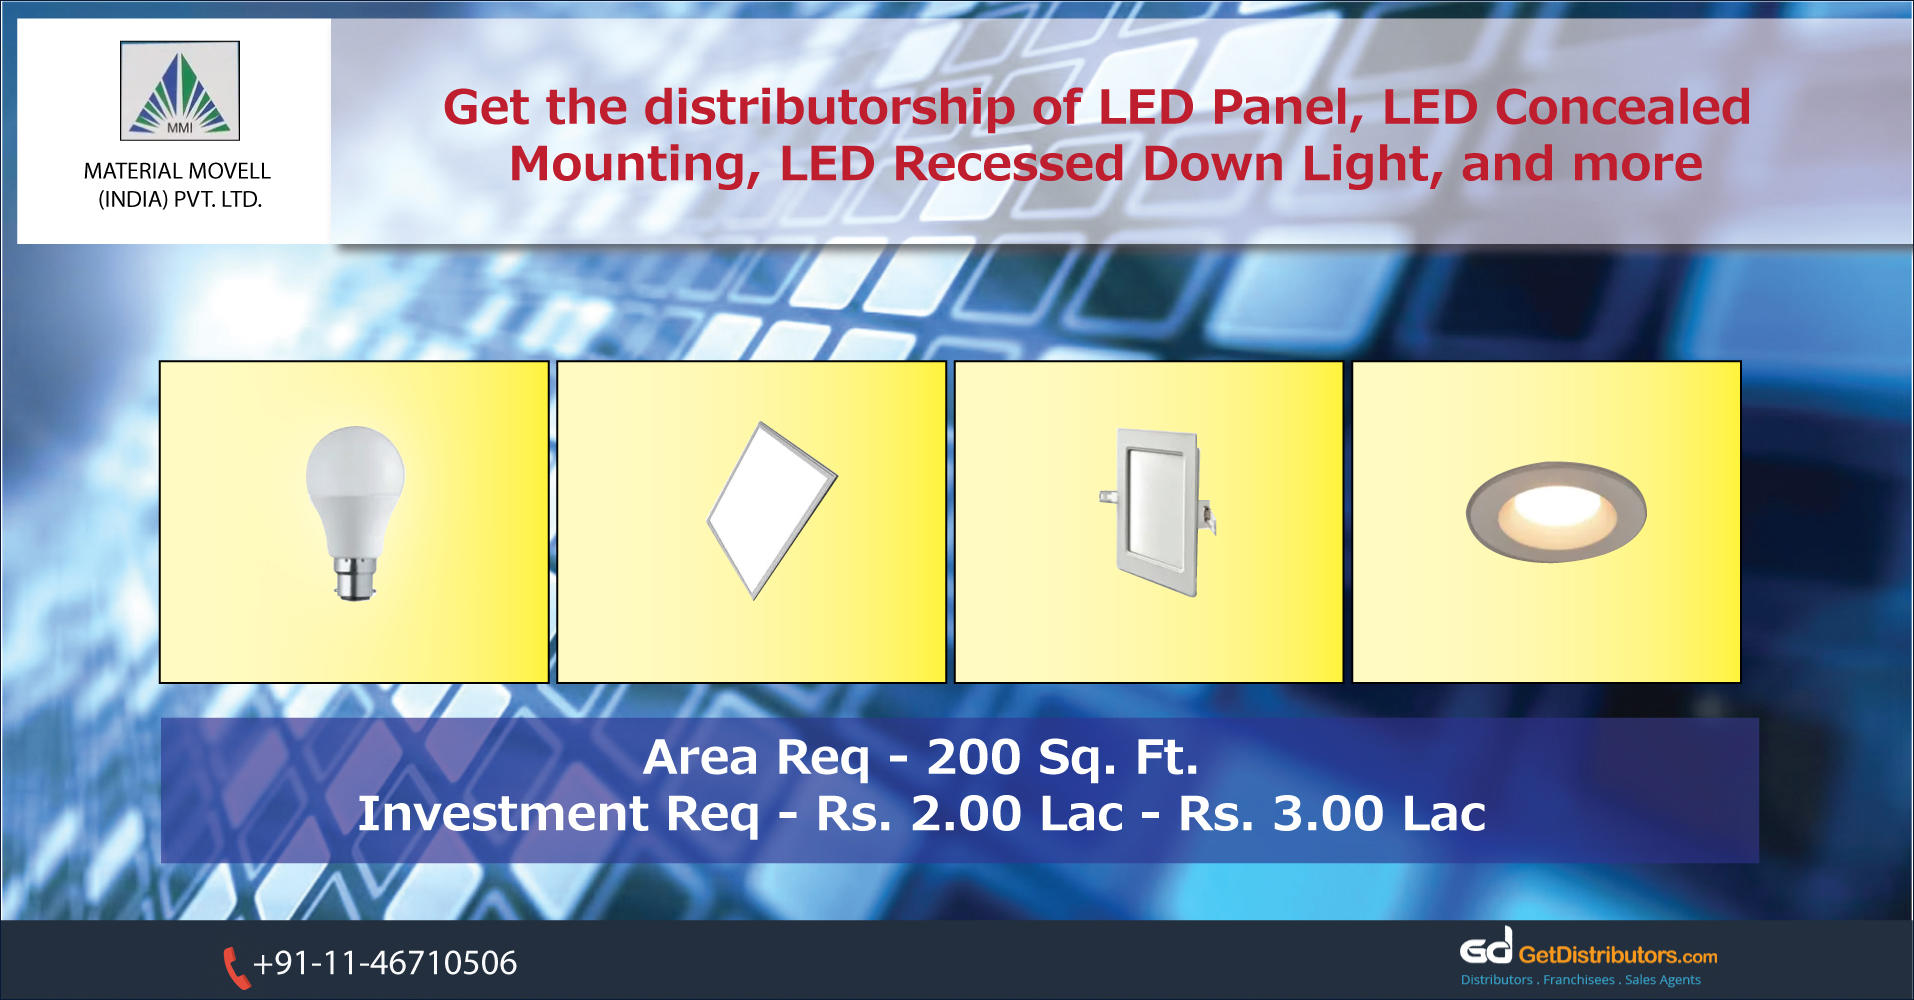 Superior Variety Of LED Products At Attractive Prices